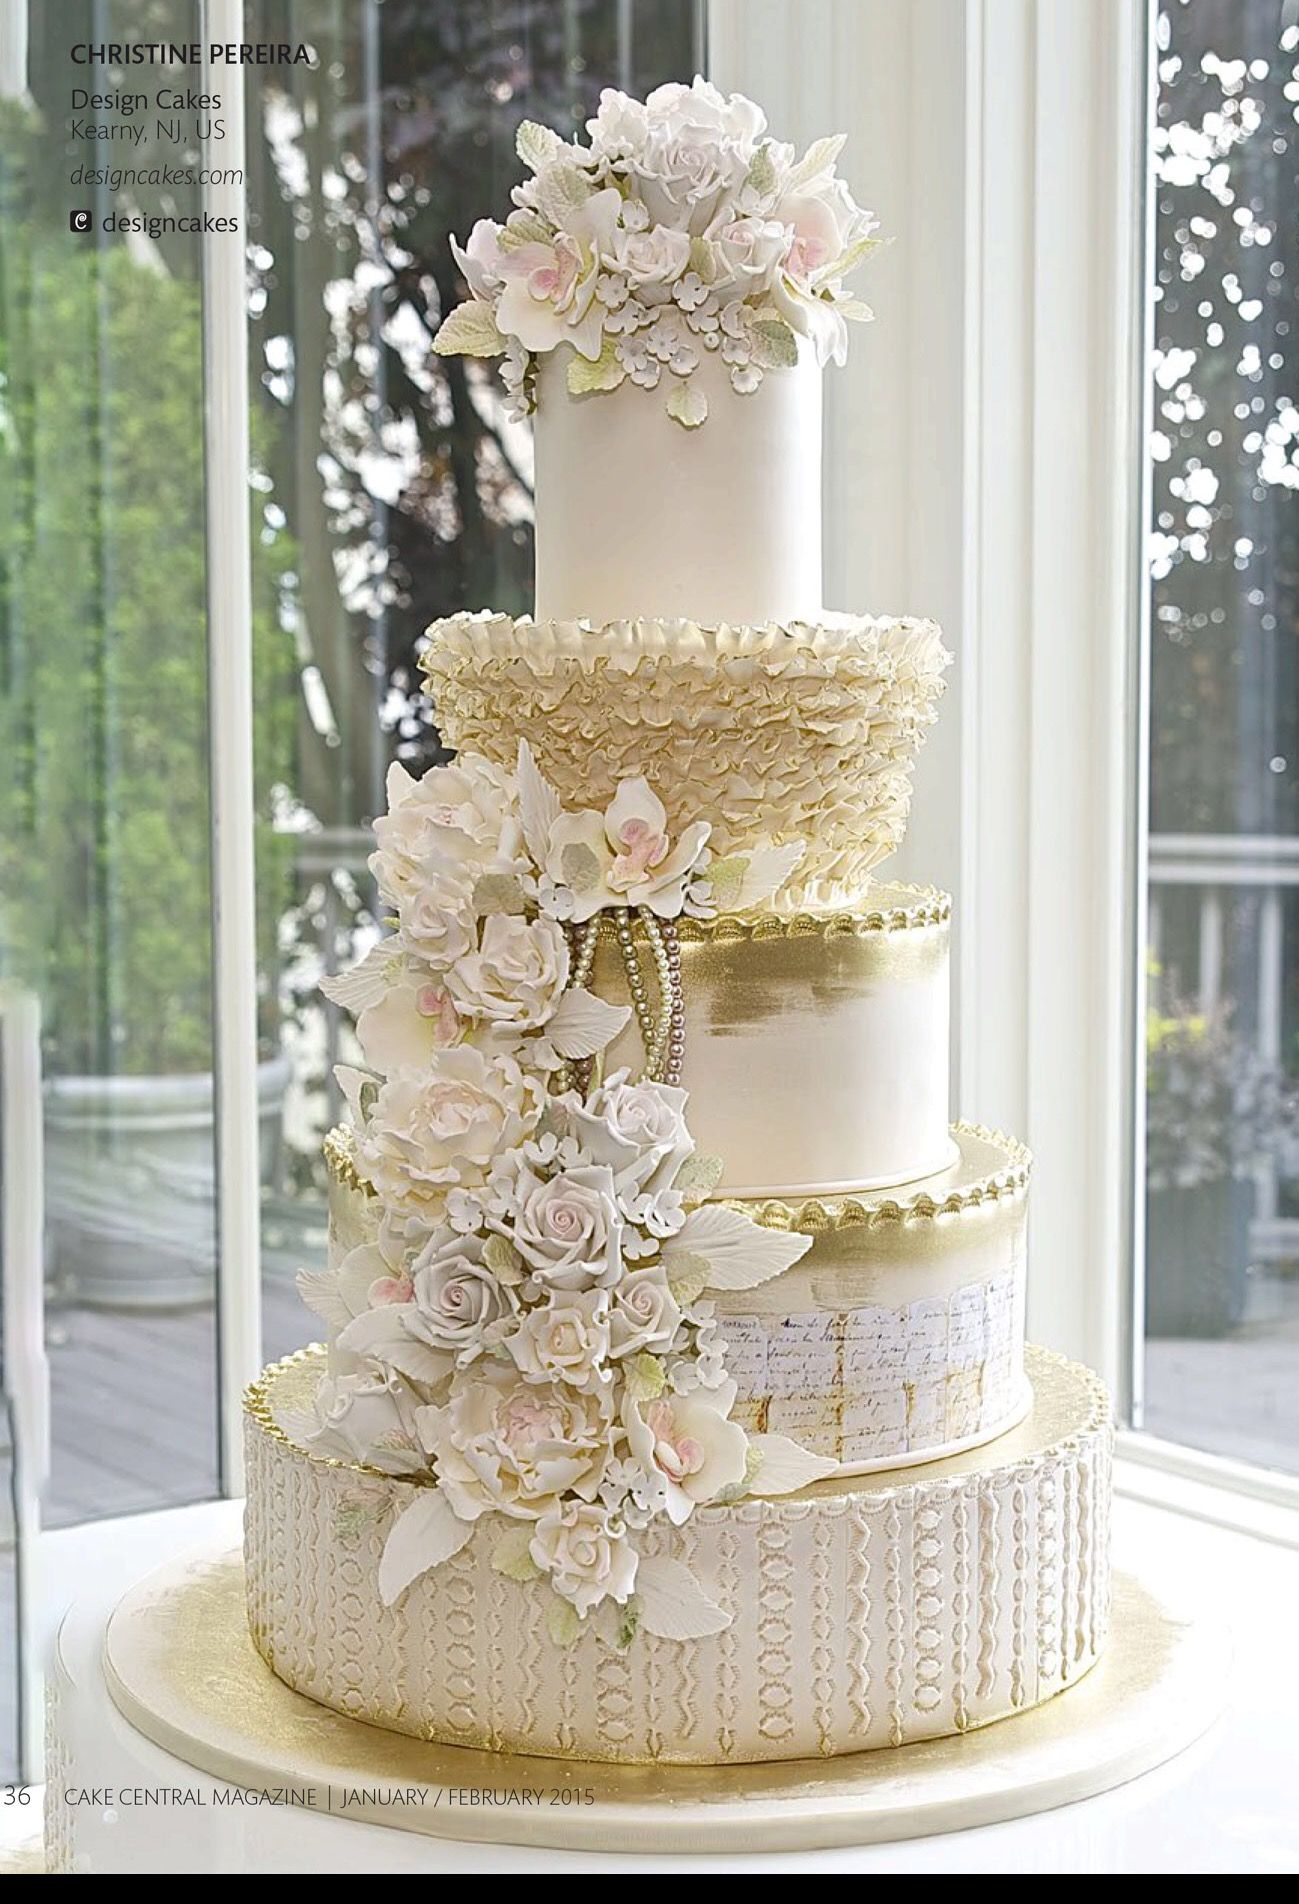 Cake by Christine Pereira Designs Cakes | Kearney, NJ | Jan. 2015 | Volume 6 Issue 1 from CC Magazine